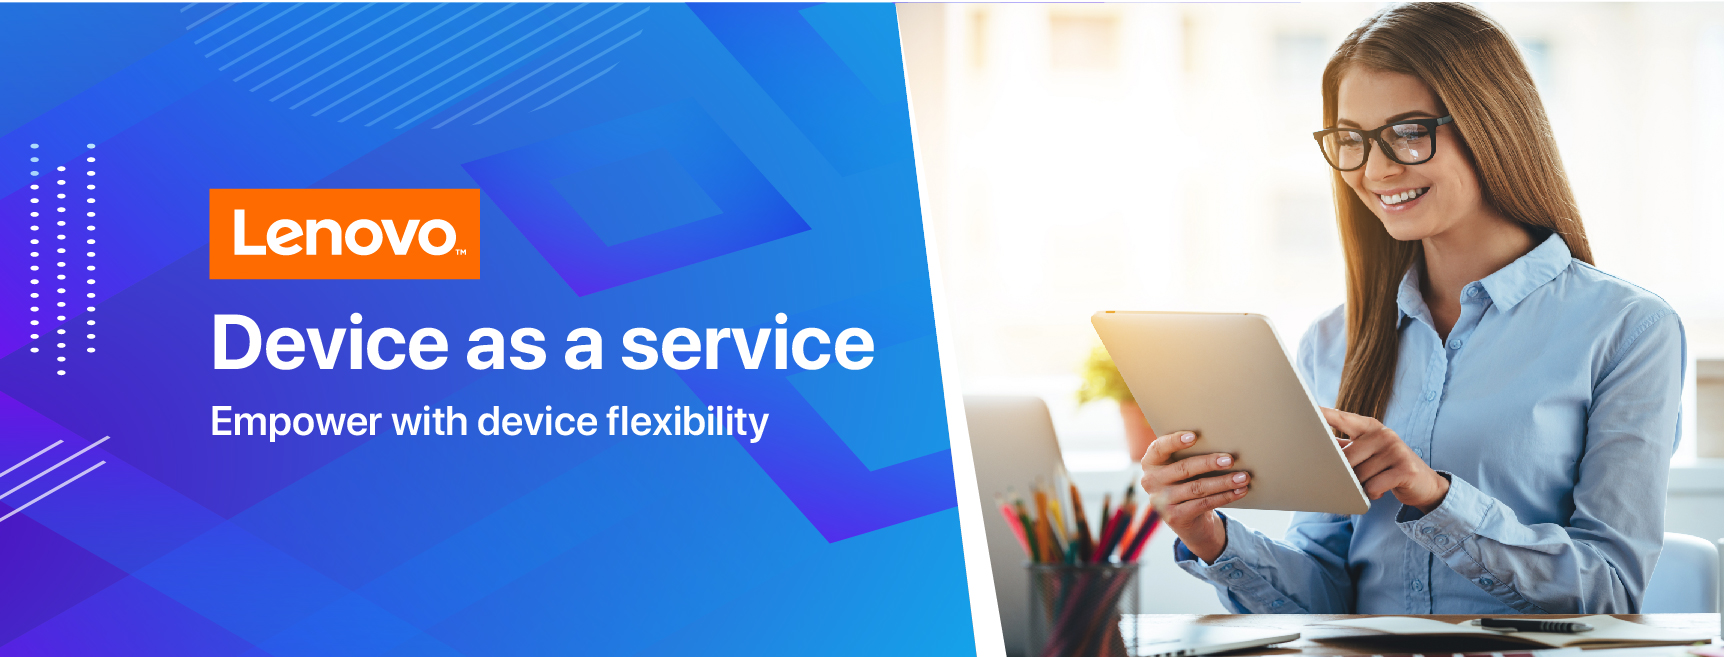 Lenovo Device as a Service: Empower with device flexibilit